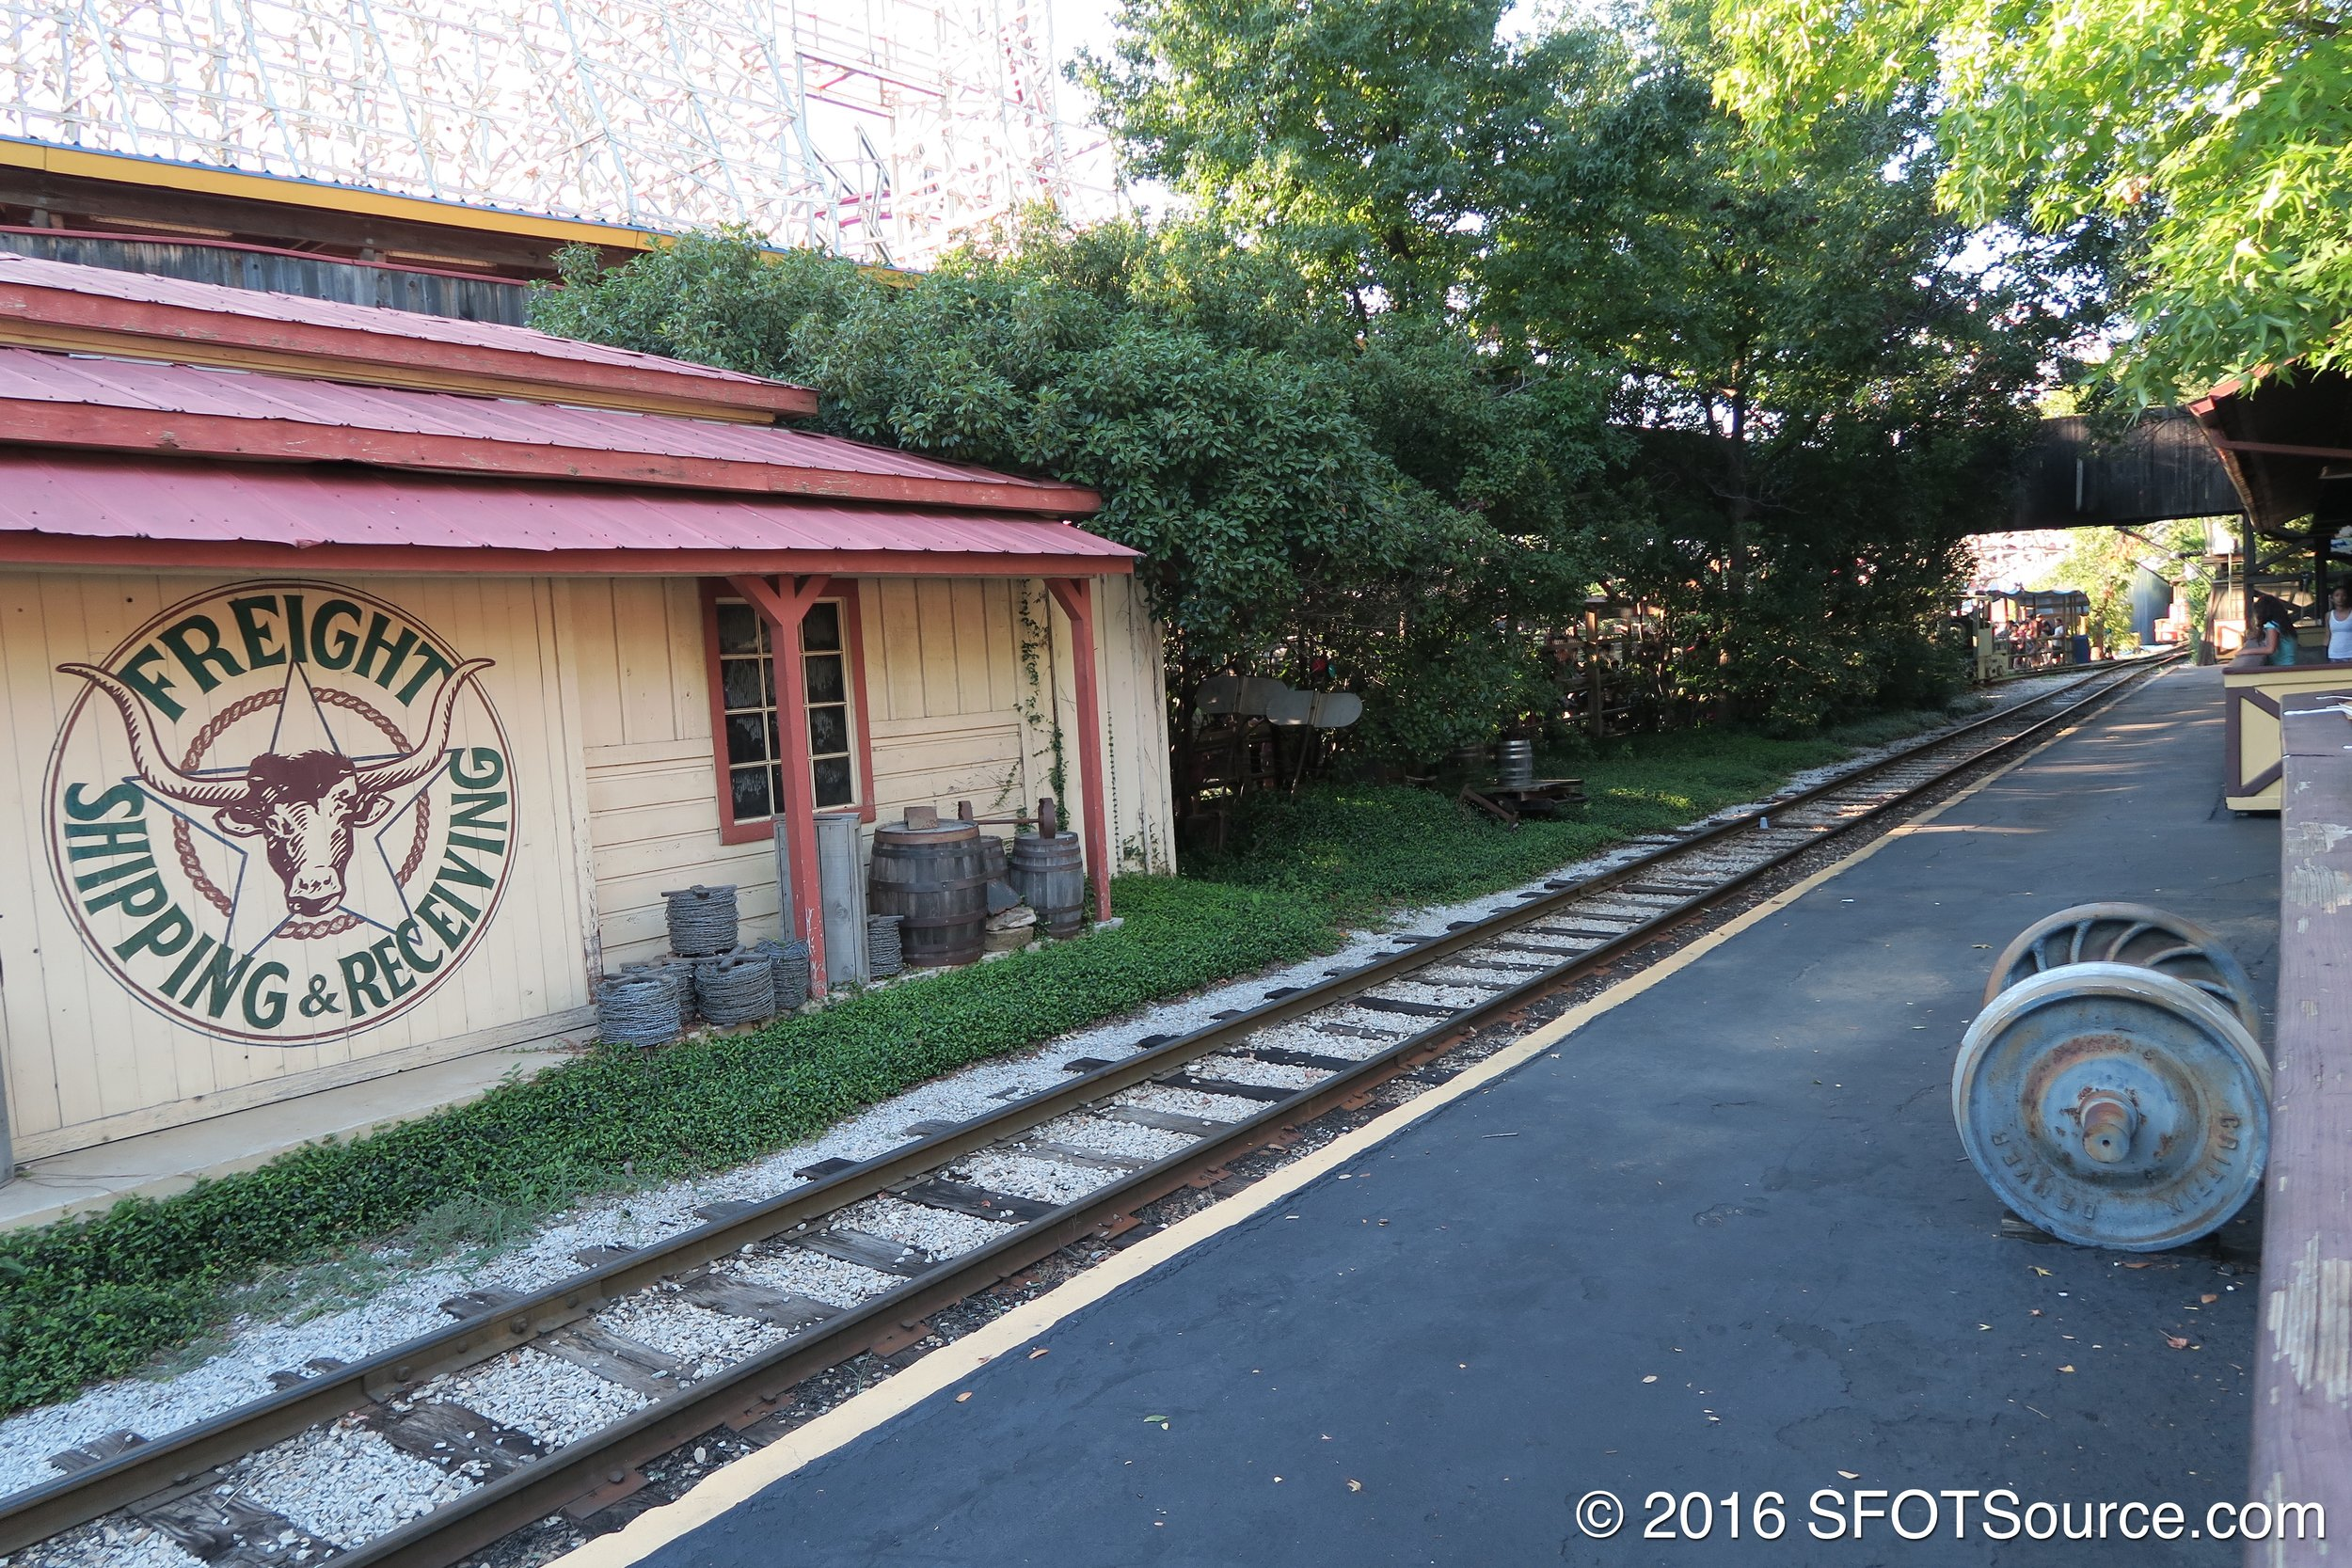 A look at more of Texas Depot.